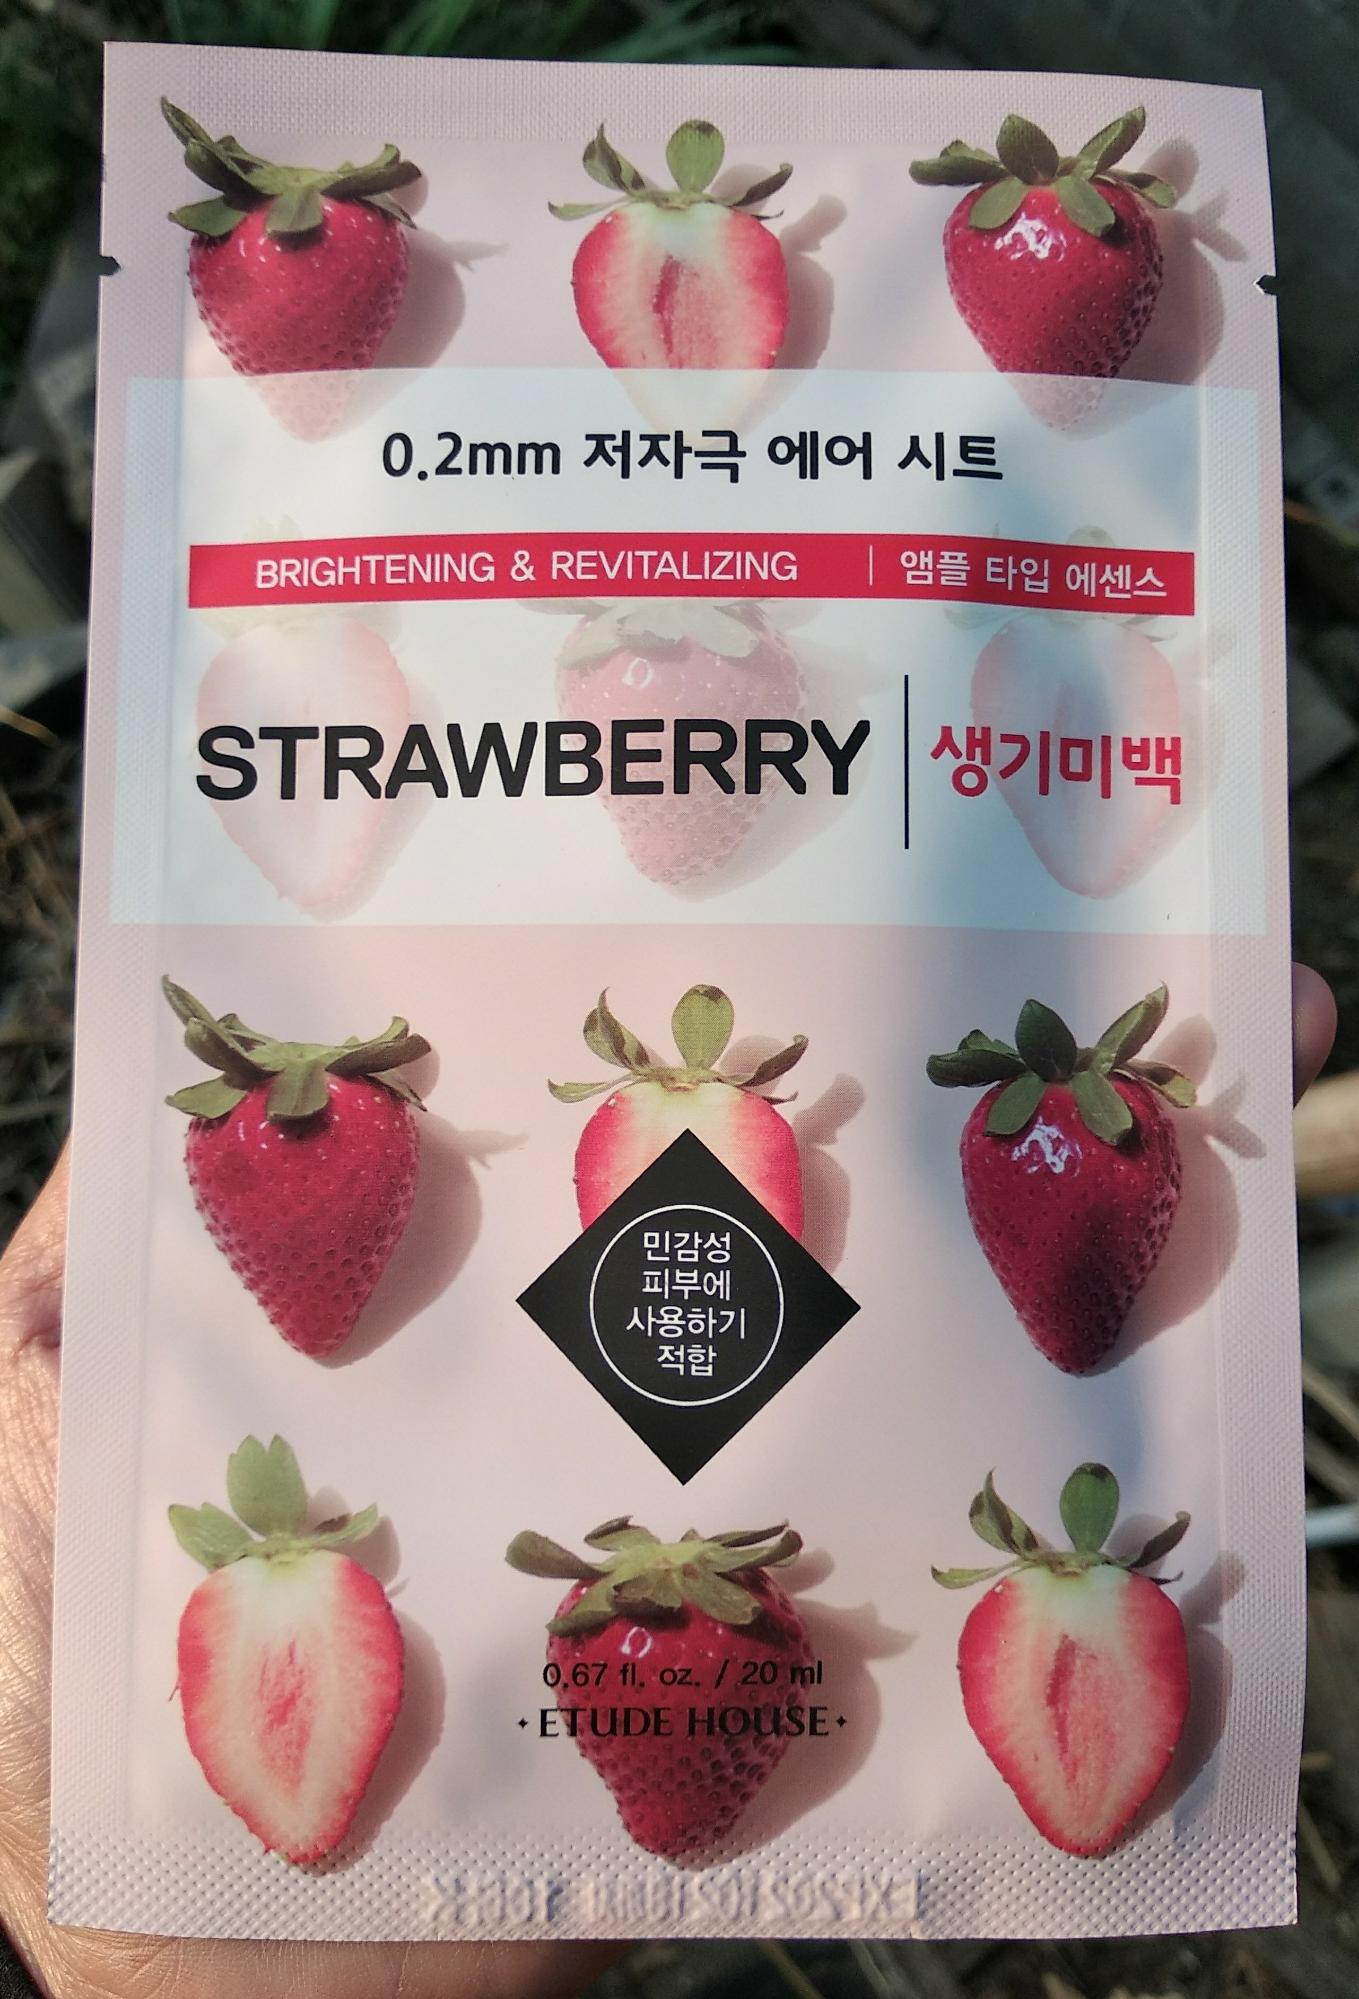 ETUDE HOUSE 0.2MM THERAPY AIR MASK SHEET STRAWBERRY